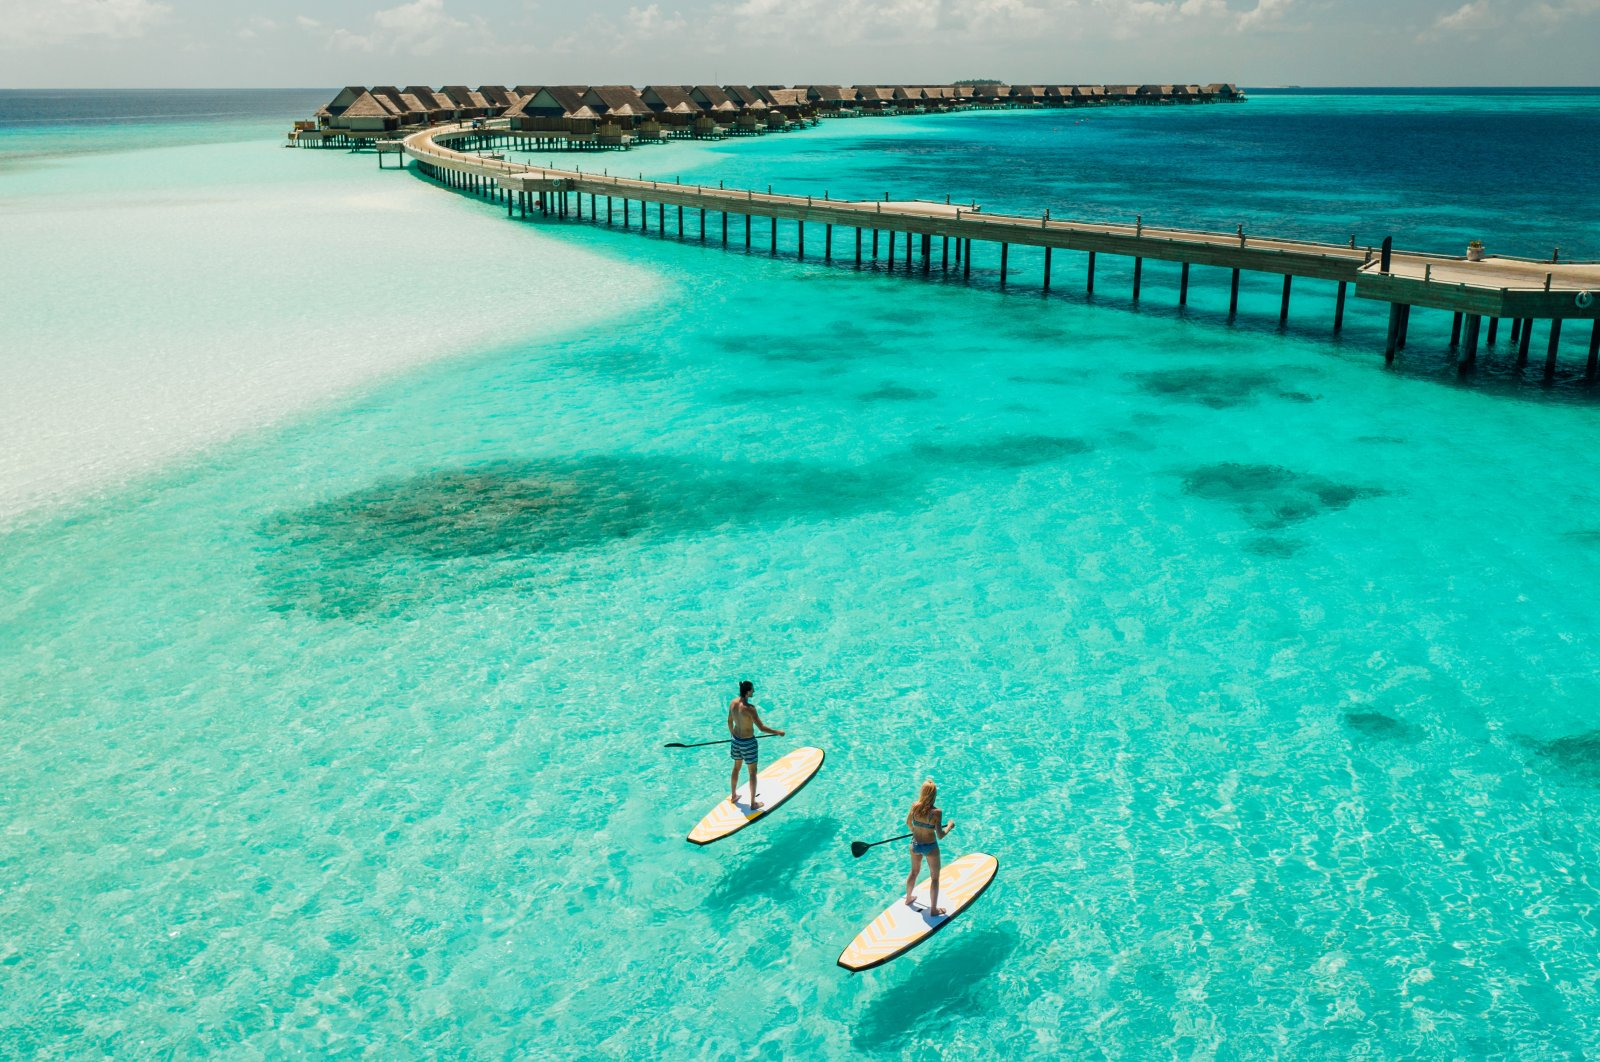 Pristine waters and silky smooth beaches, the Maldives is like a scene straight from paradise. (Photo courtesy of Joali Maldives)